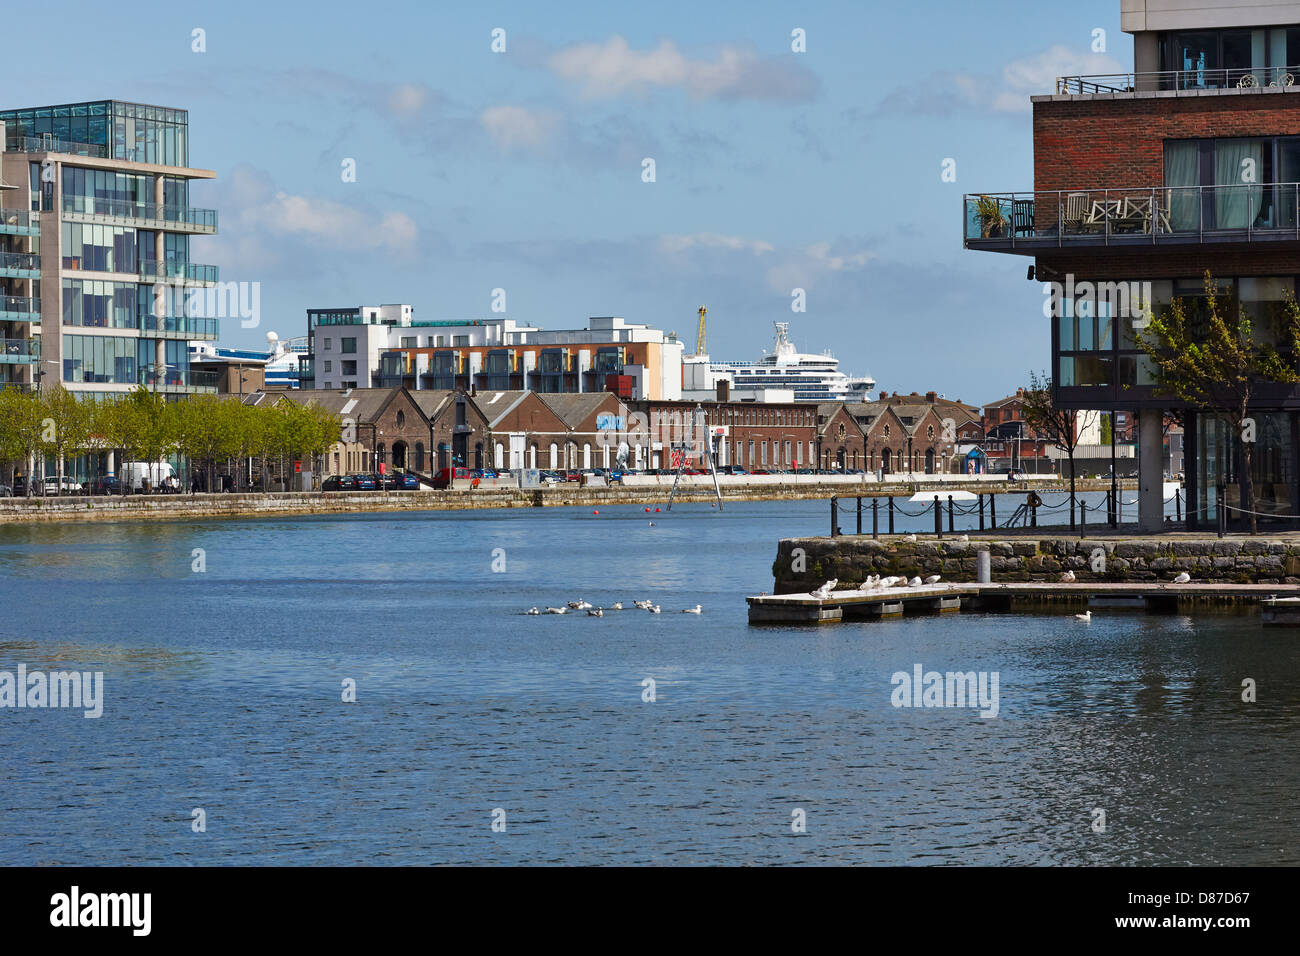 Grand Canal Dock, Dublin's docklands. This area is part of the  Docklands development project. - Stock Image